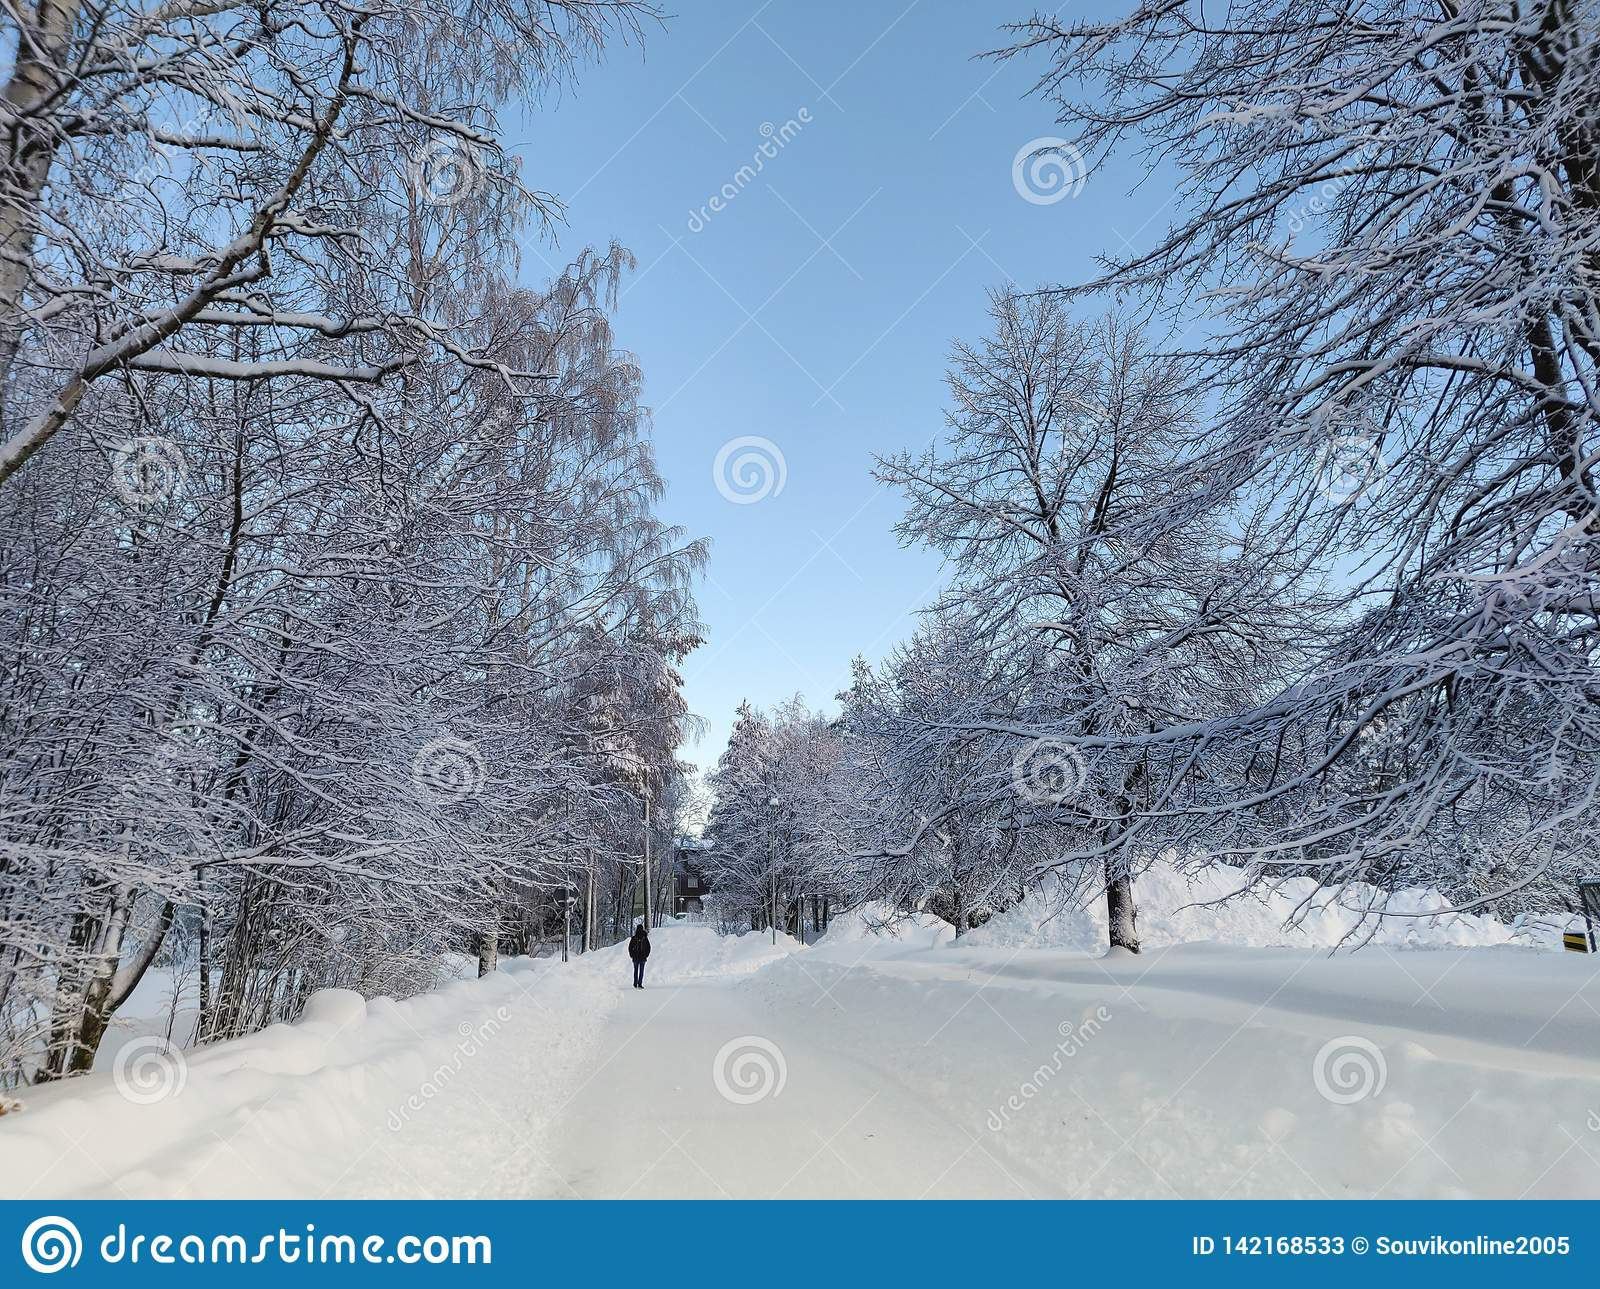 Tree surrounded empty street snowscape under the bluesky with scenic panoromic beauty